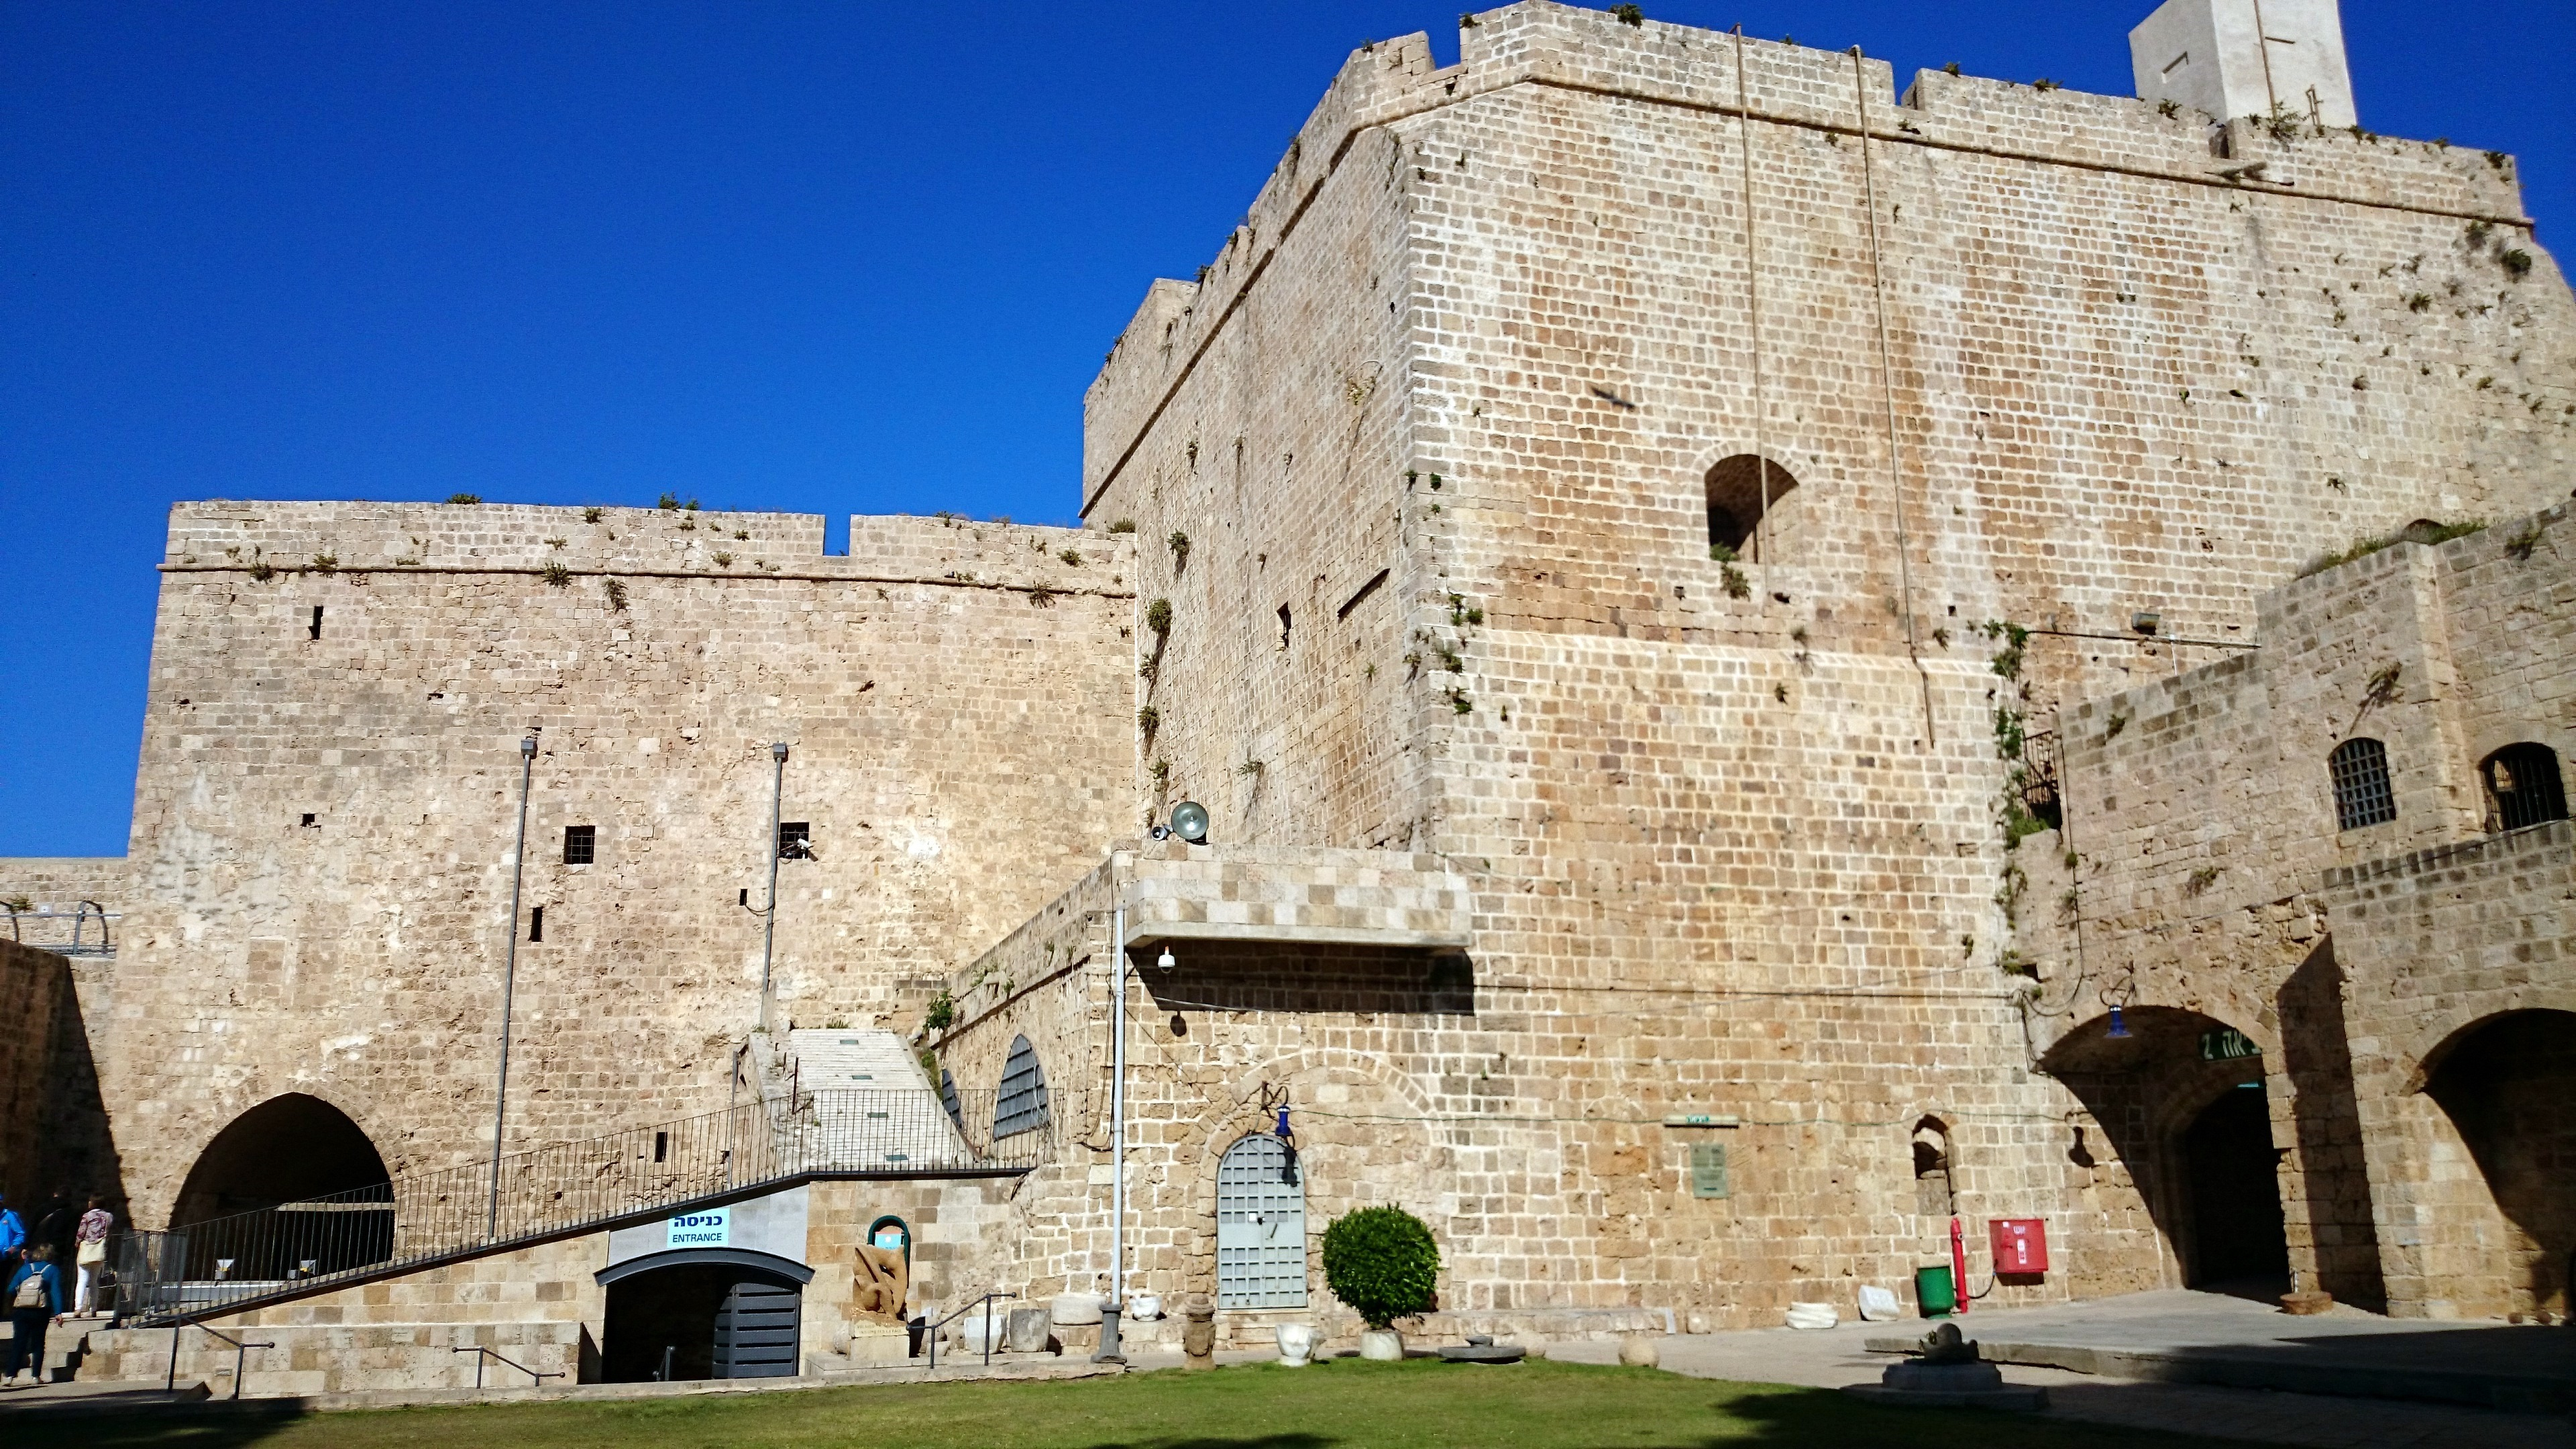 Crusader Fortress : Old City of Acre – Northern Israel | Visions of Travel